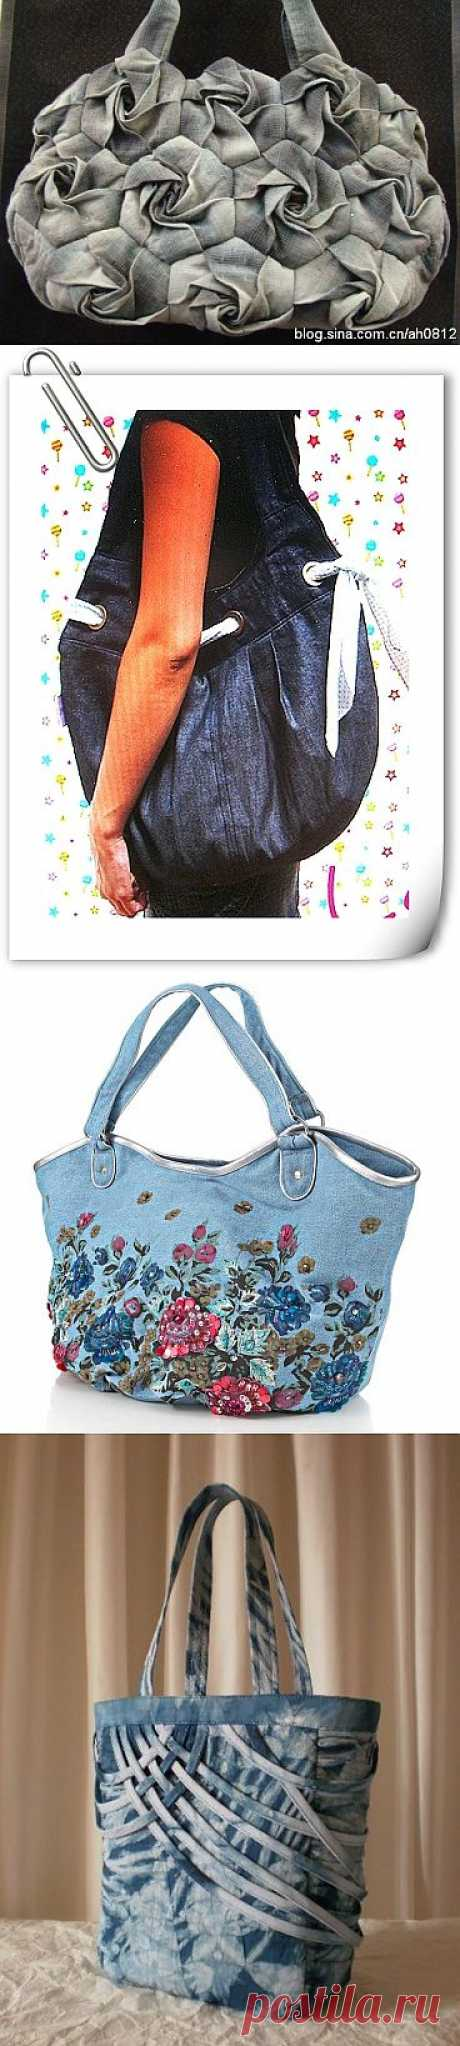 Bags from jeans. \/ Bags, clutches, suitcases \/ the Fashionable website about stylish alteration of clothes and an interior